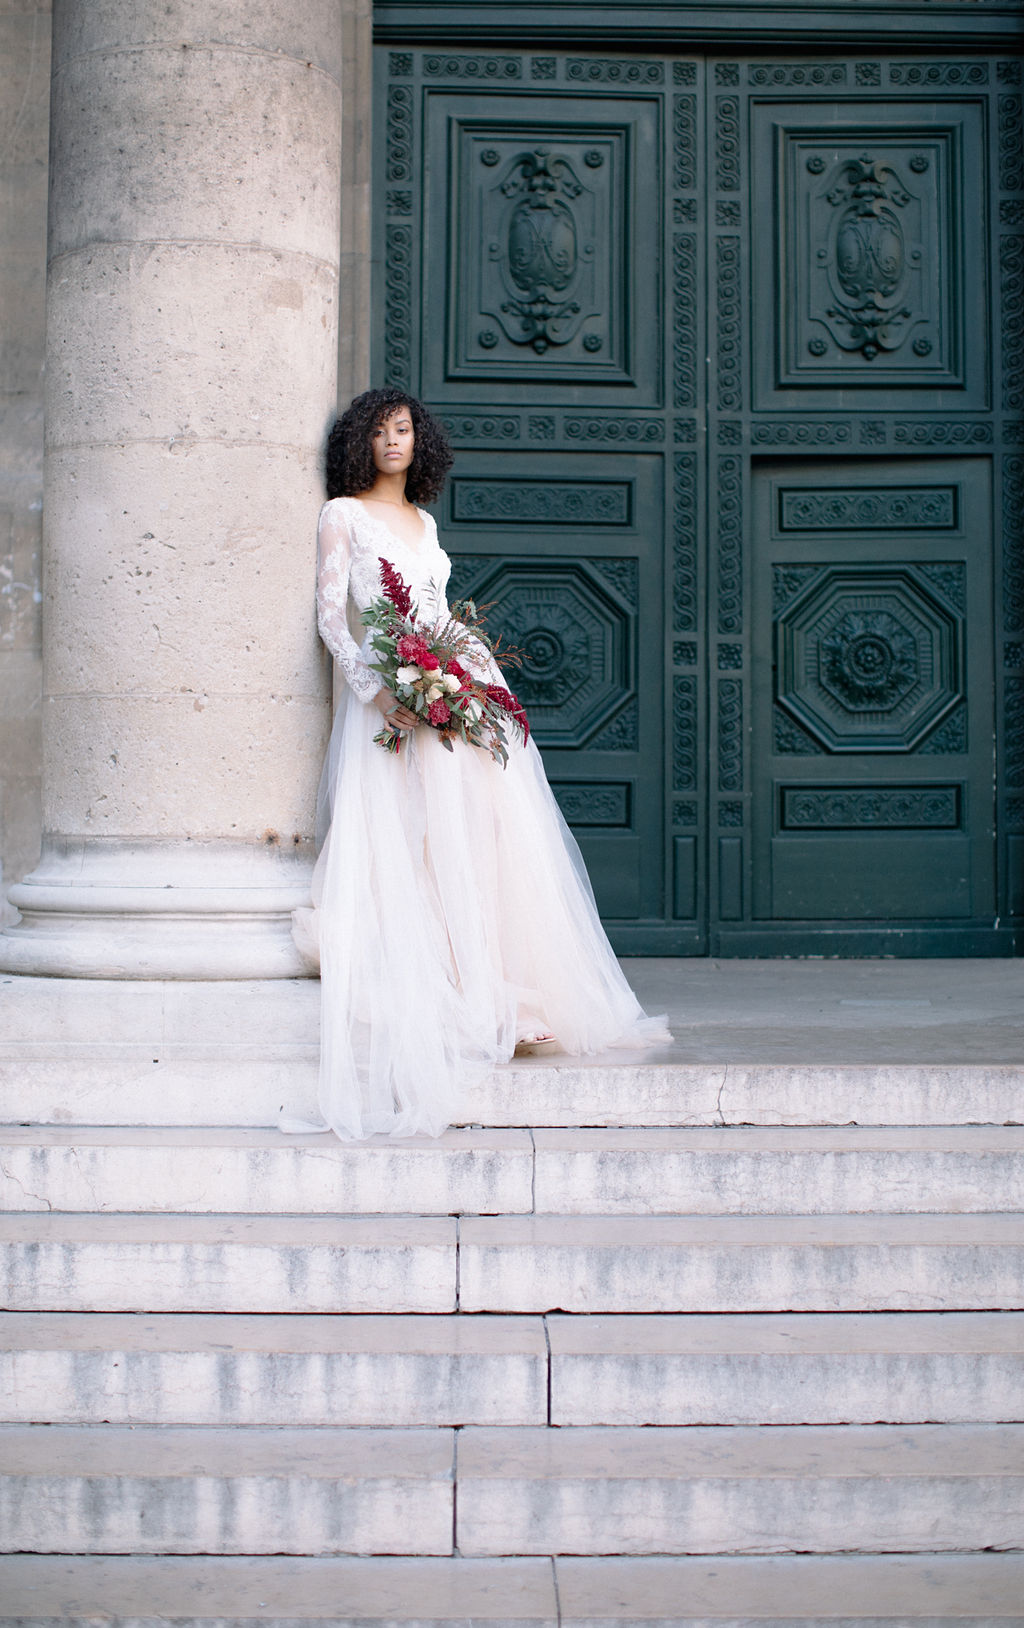 belle-mariée-tenant-son-bouquet-à-paris-place-vendome